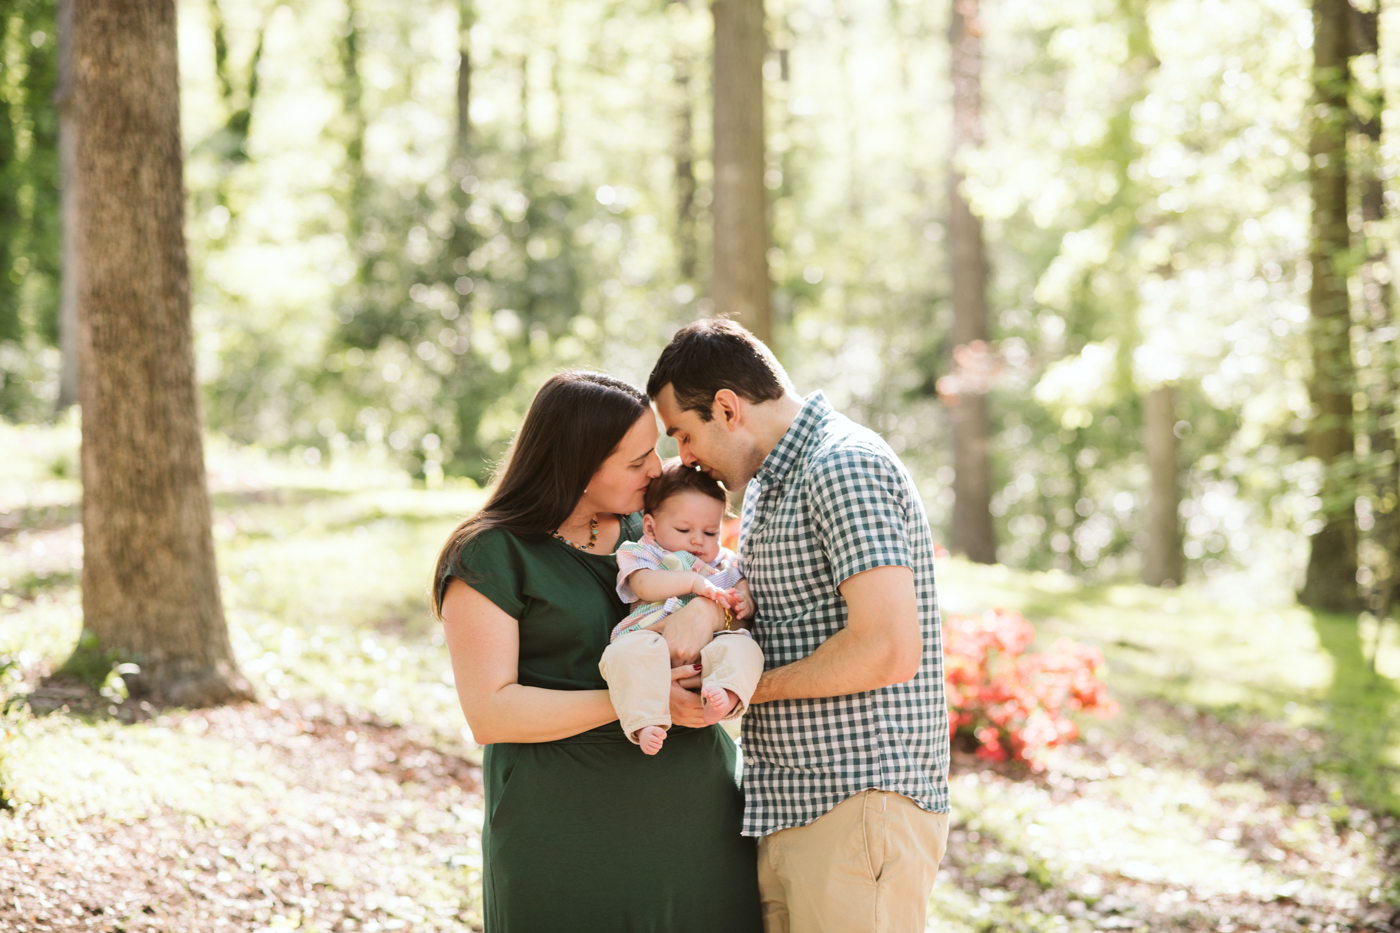 Young parents kissing their baby son together in a park in ATL Raven Shutley Family Photos